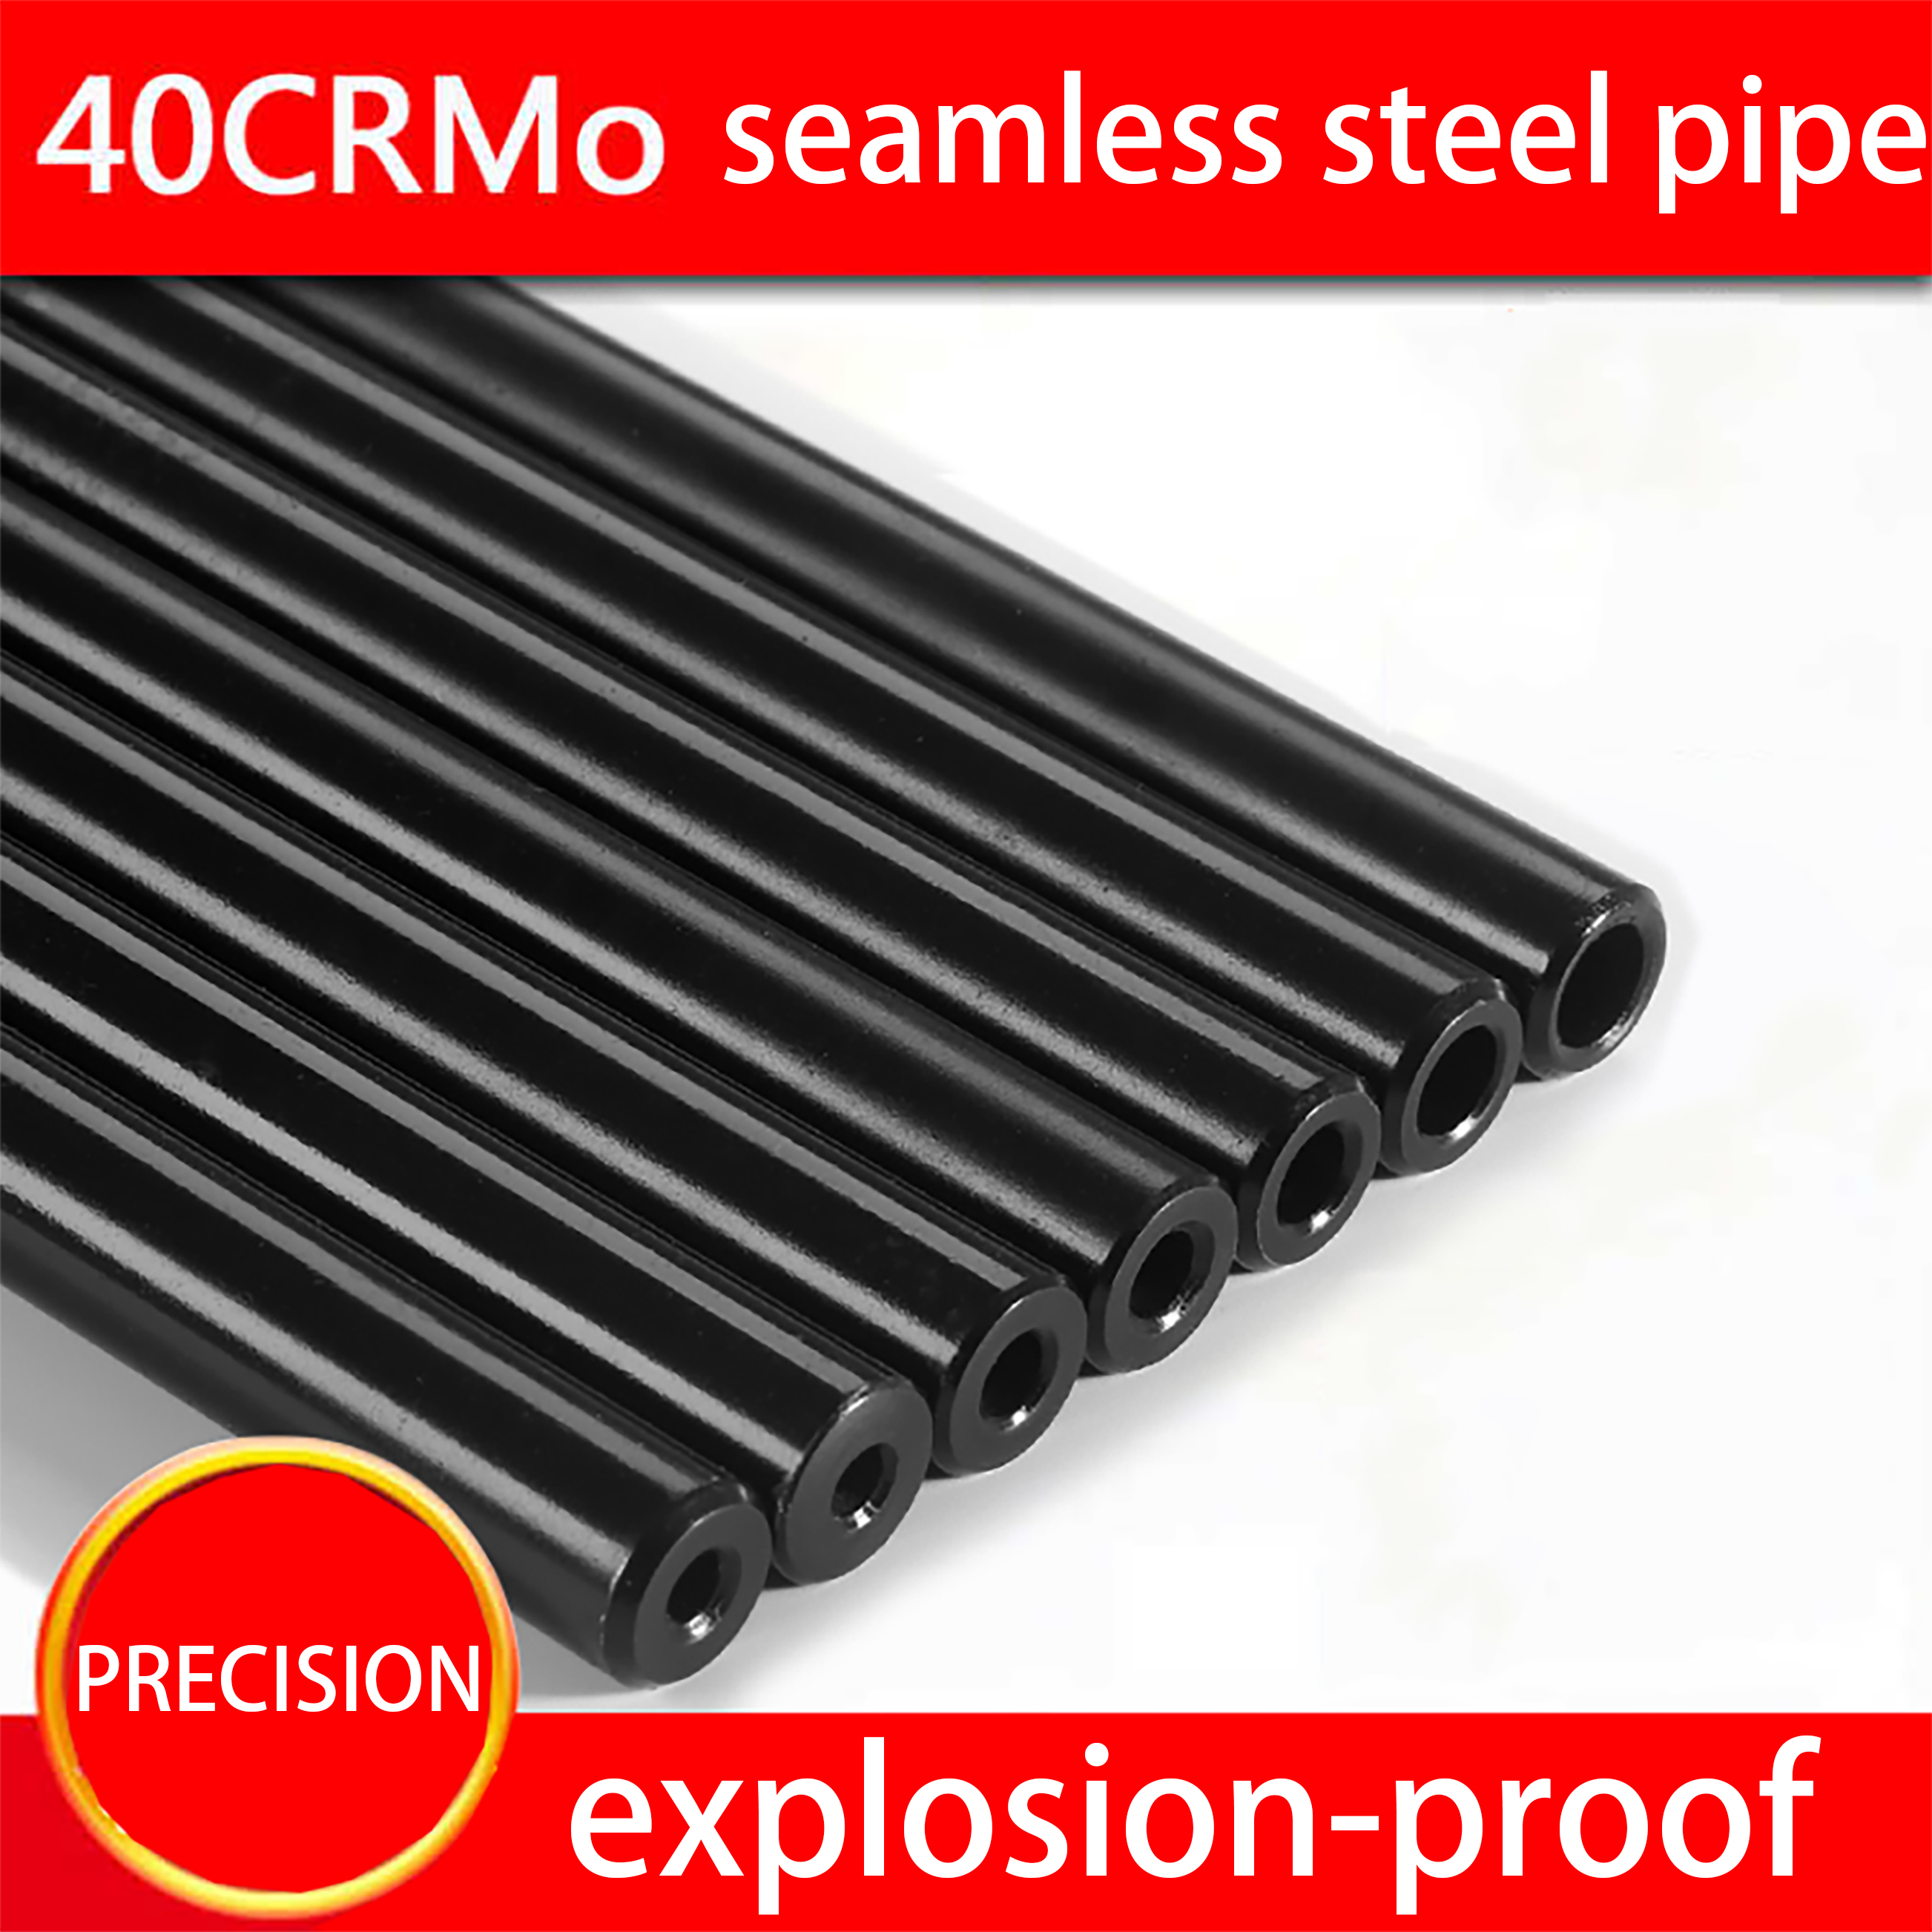 16mm Outside Diameter Hydraulic Alloy Precision Steel Tubes Seamless Steel Pipe Explosion-proof Pipe Long 30cm